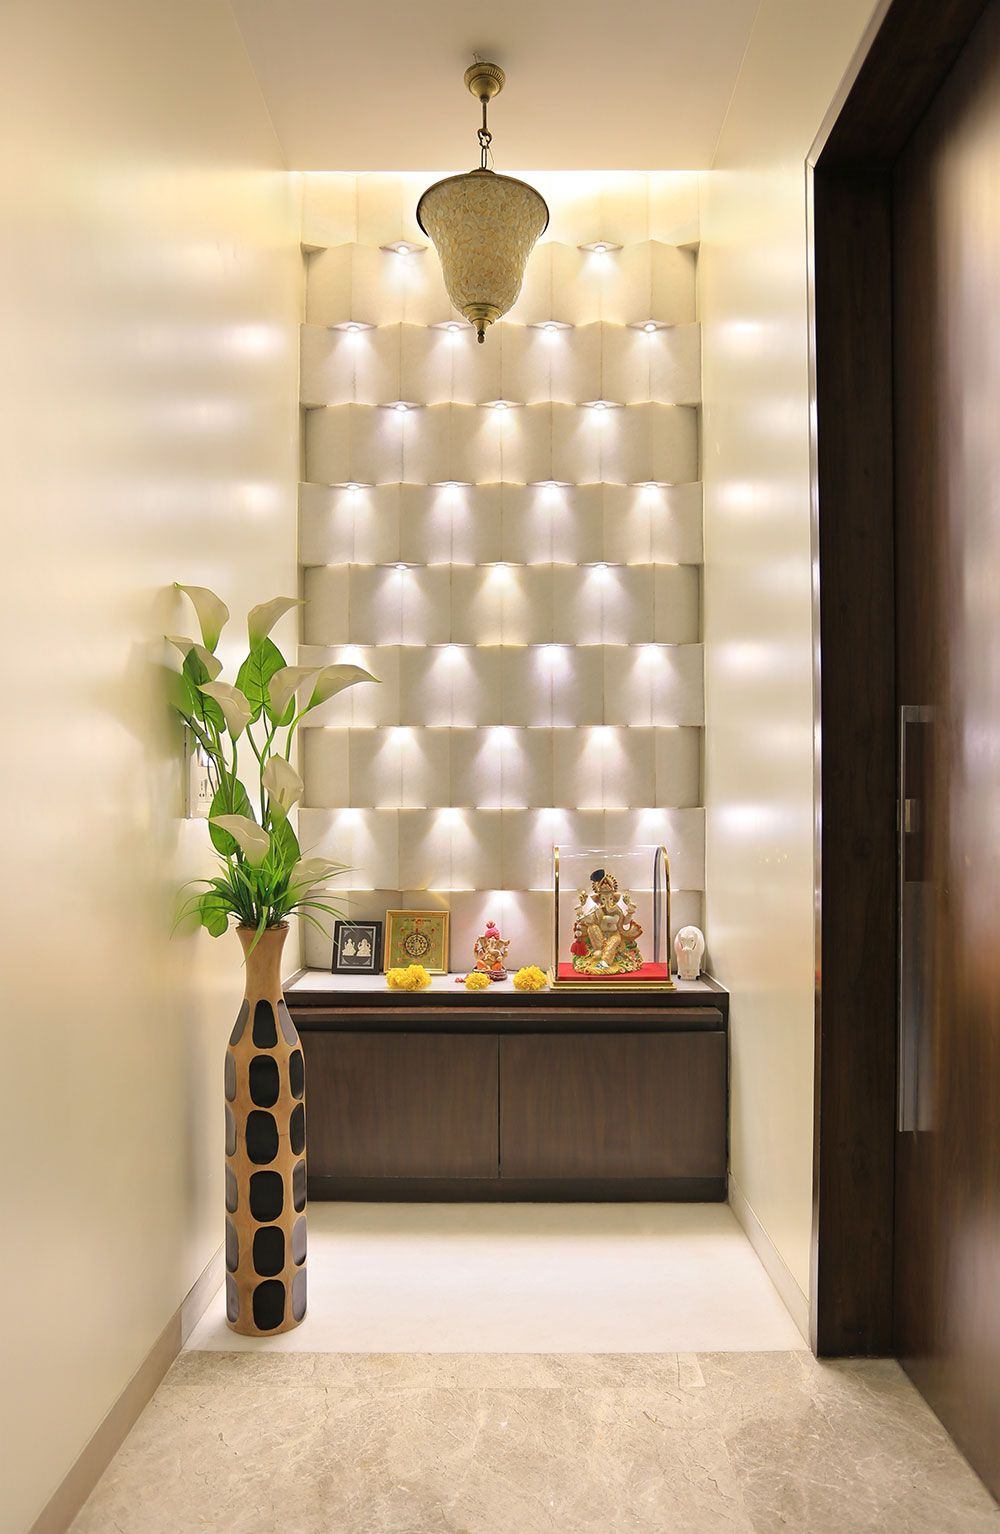 9 Traditional Pooja Room Door Designs In 2020: 6 Locations Ideas For Puja Space For Your Home